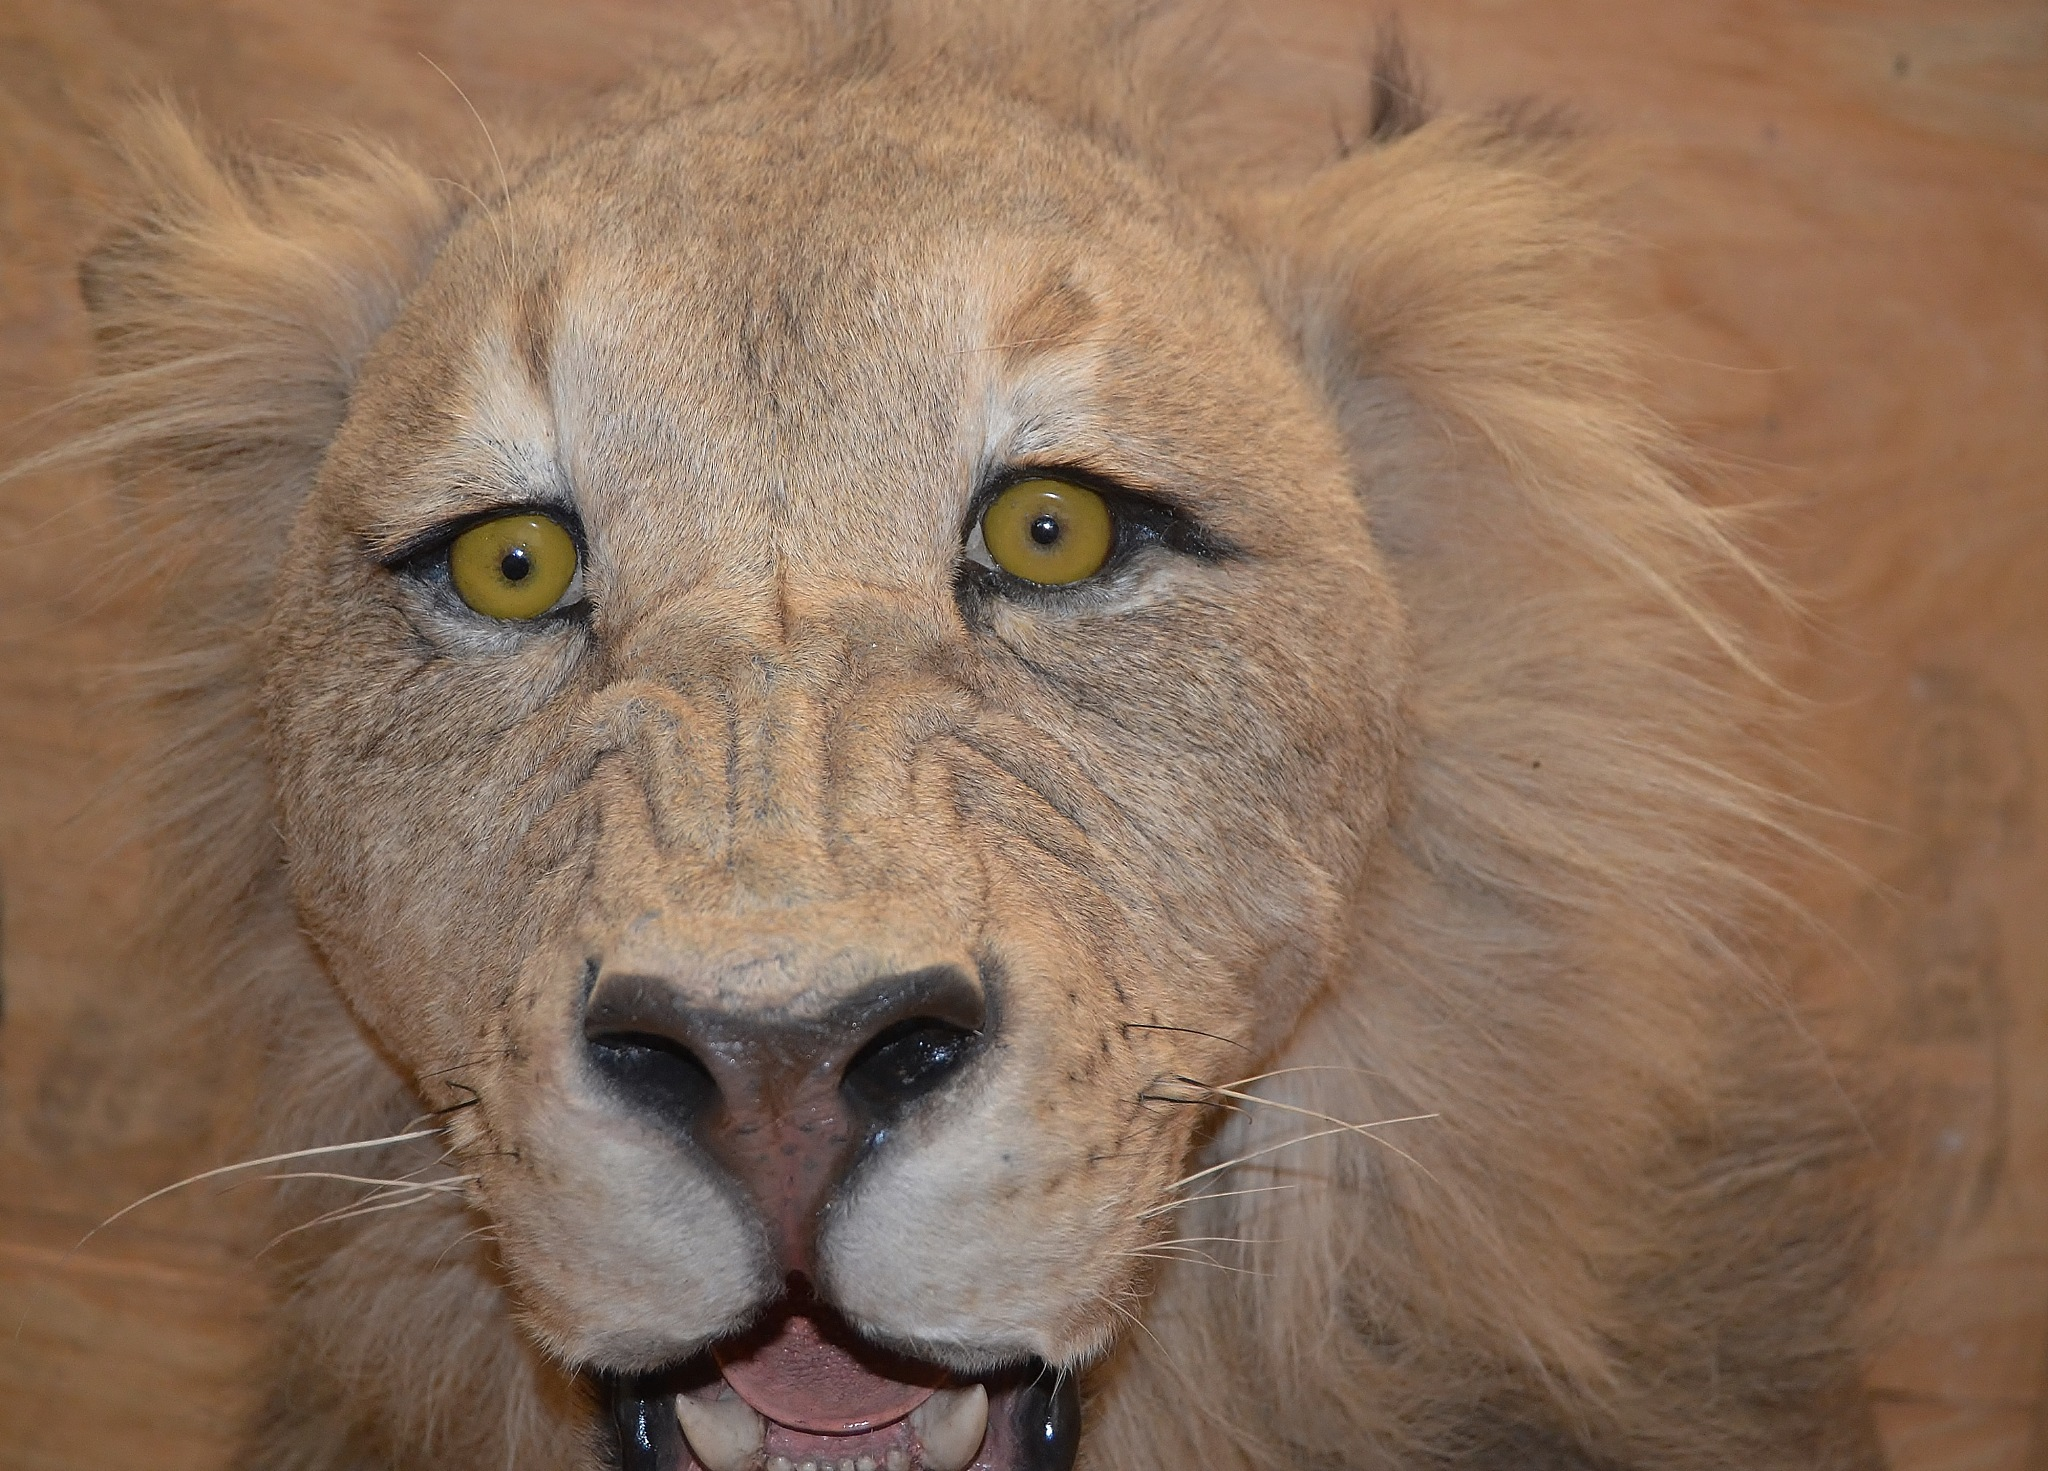 Lion from the front by stefan.andersson3